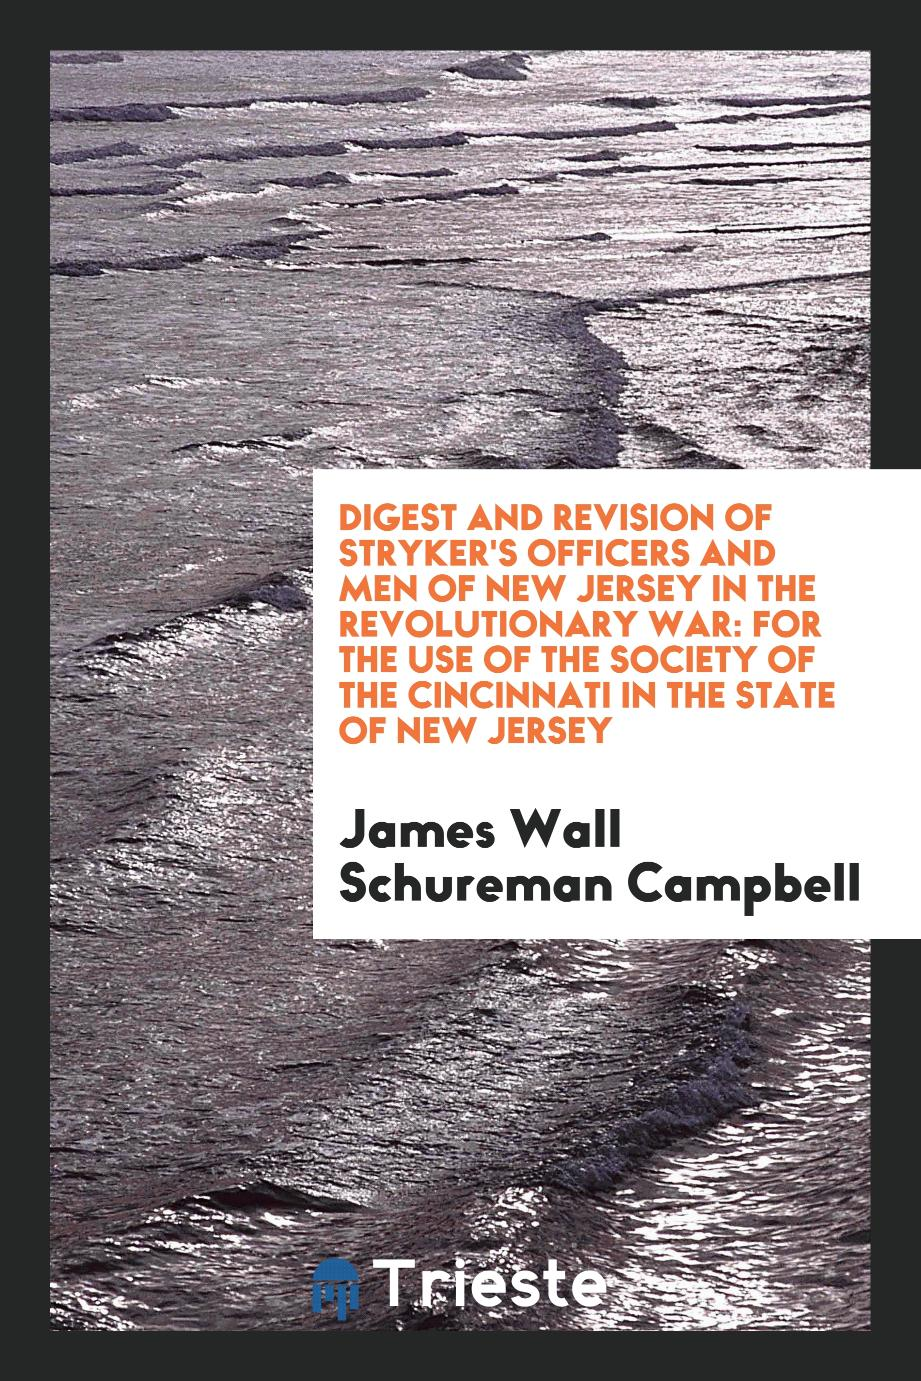 Digest and Revision of Stryker's Officers and Men of New Jersey in the Revolutionary War: For the Use of the Society of the Cincinnati in the State of New Jersey